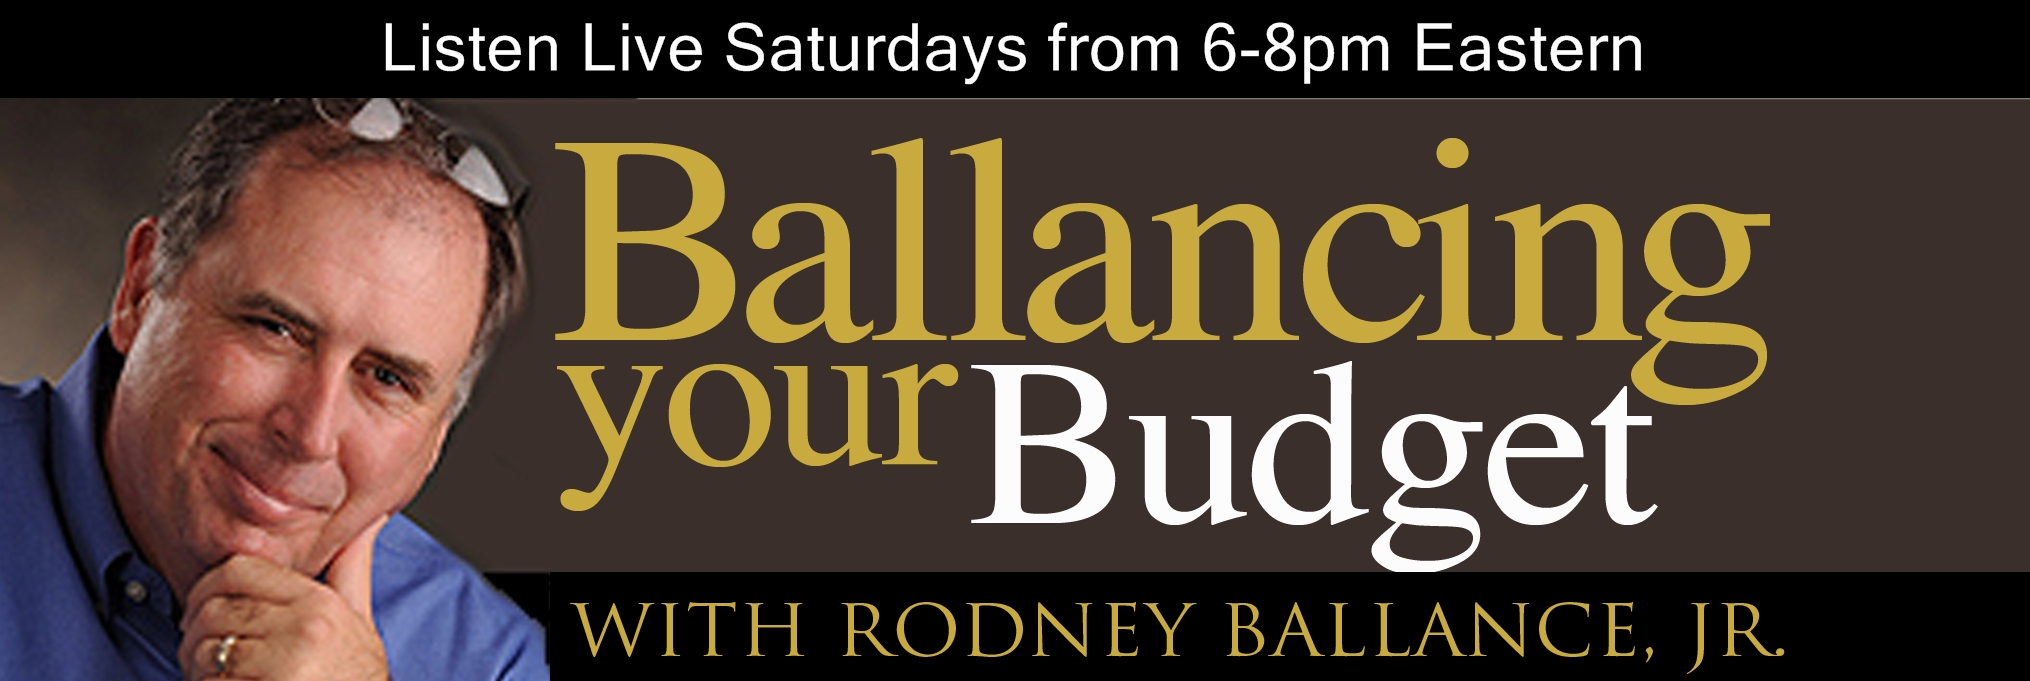 Click Here For The Rodney Ballance Radio Program... Ballancing Your Budget